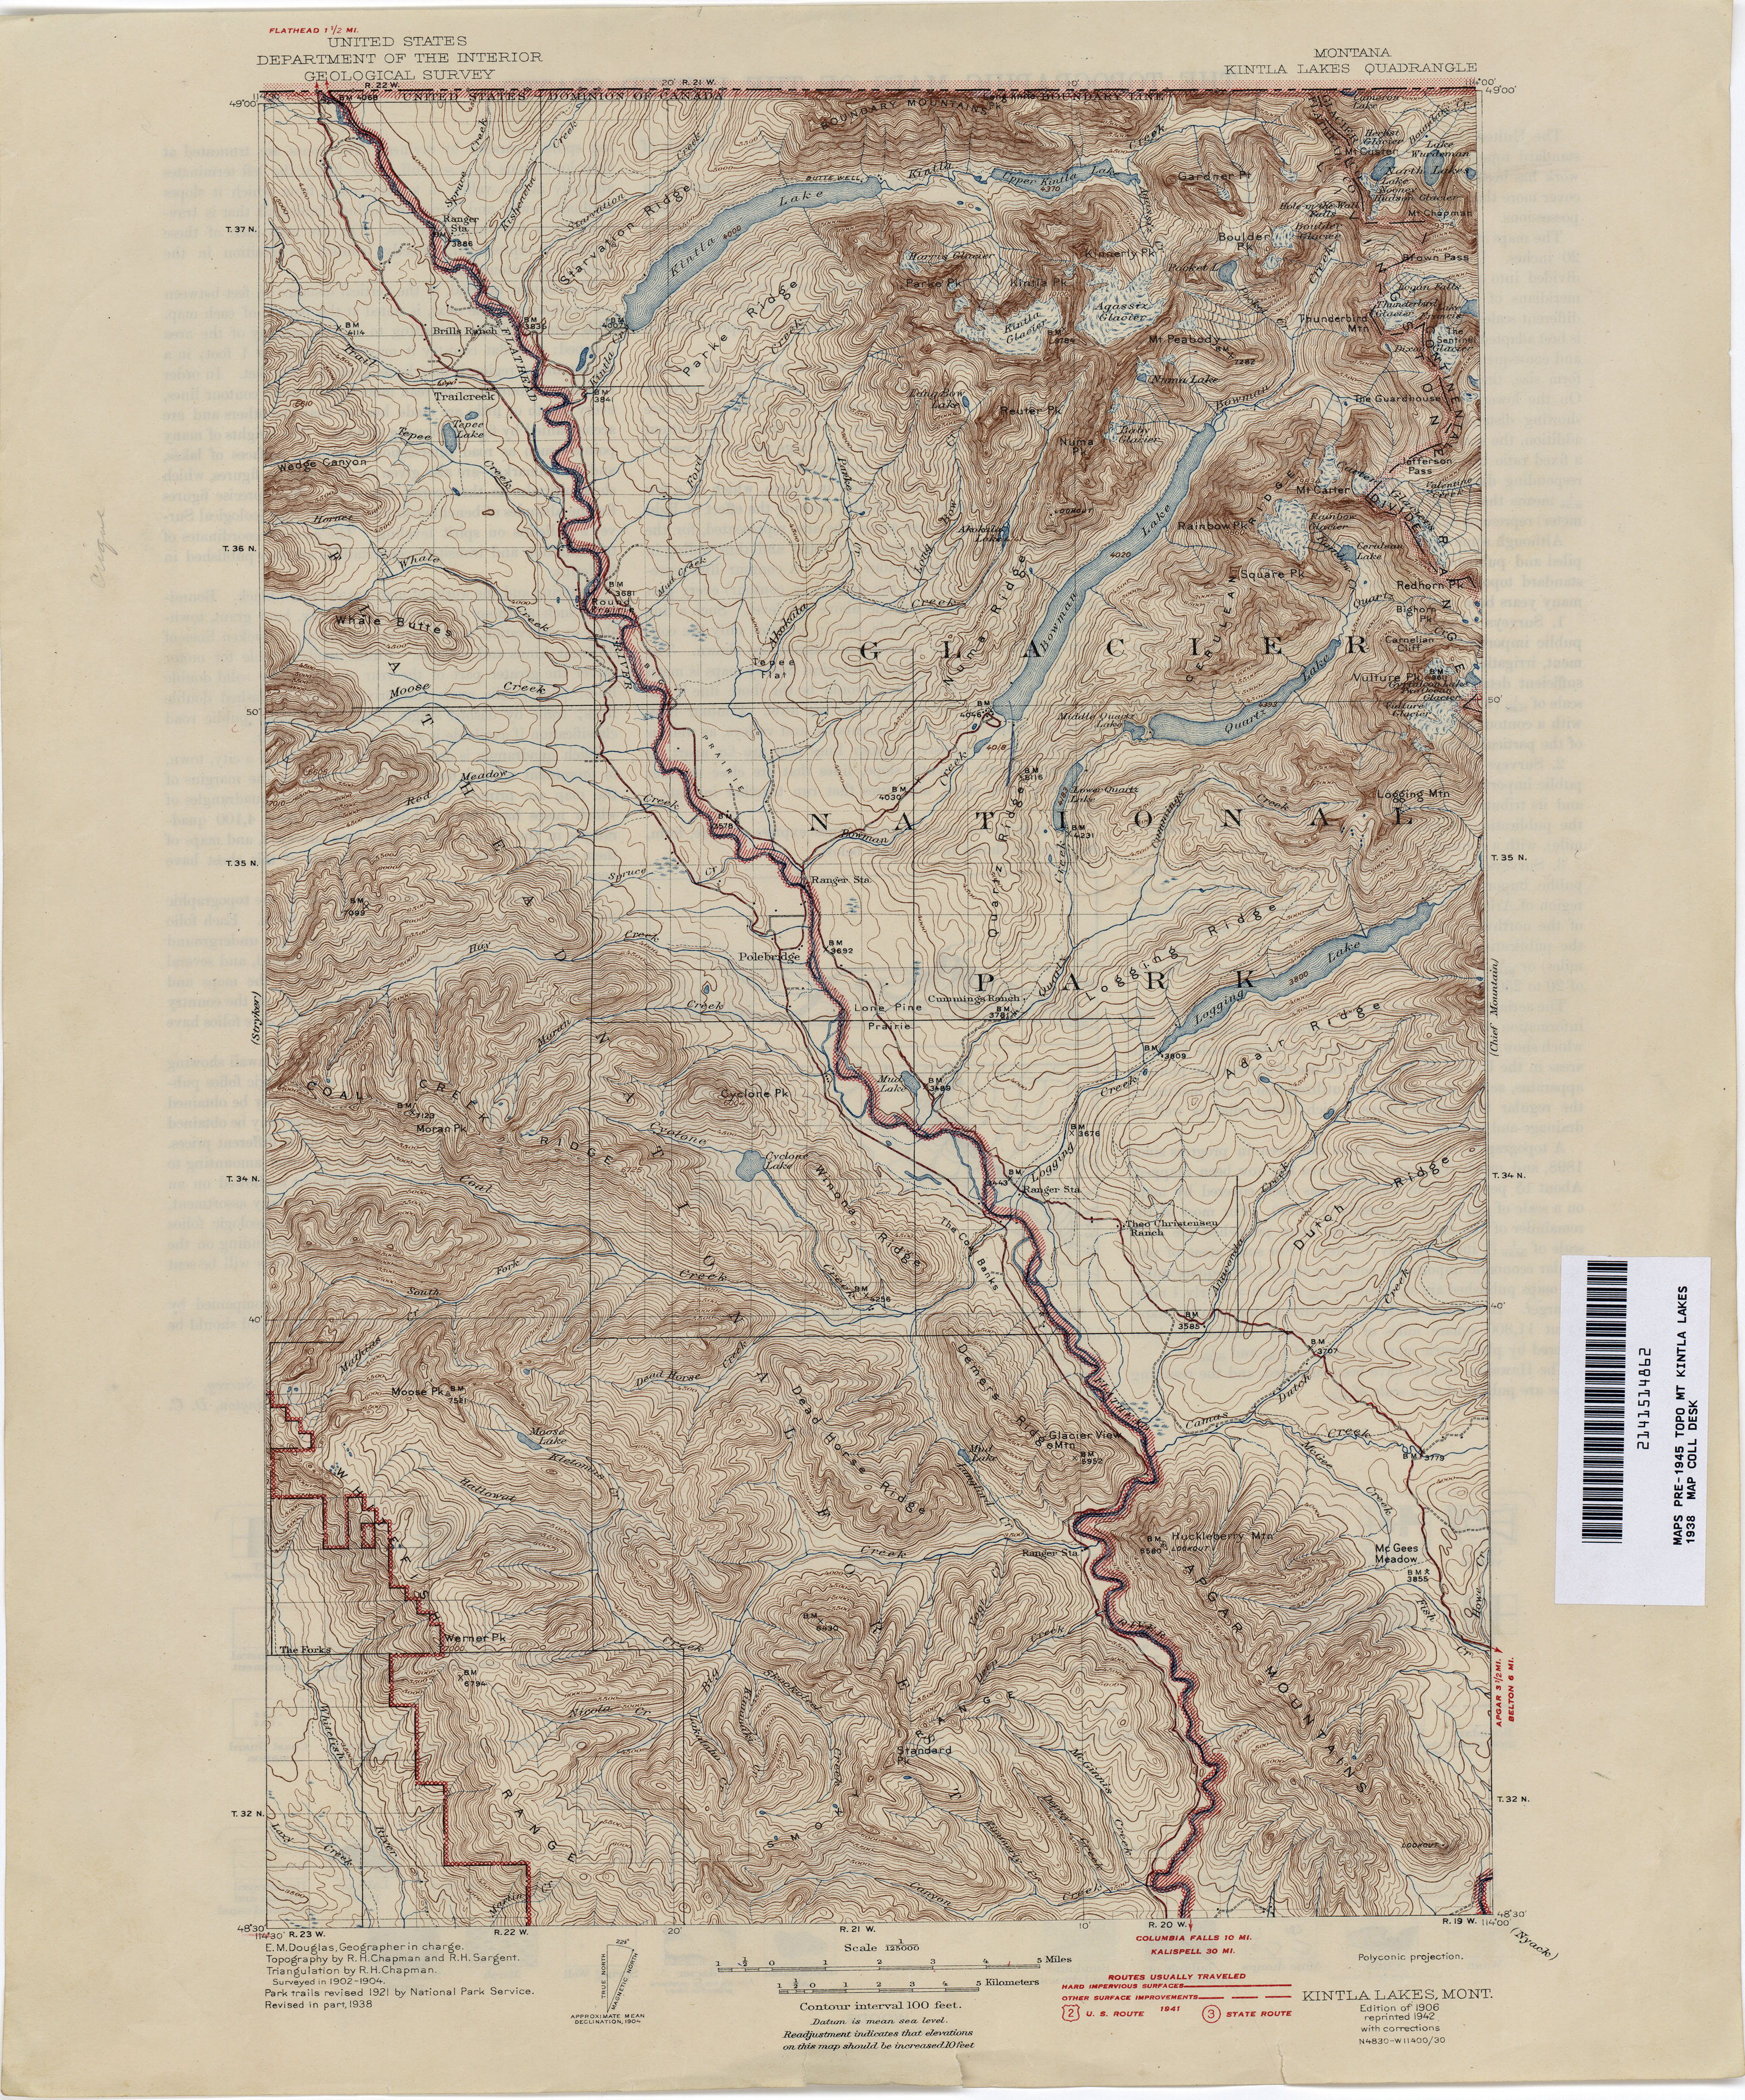 Montana Topographic Maps - Perry-Castañeda Map Collection - UT ...